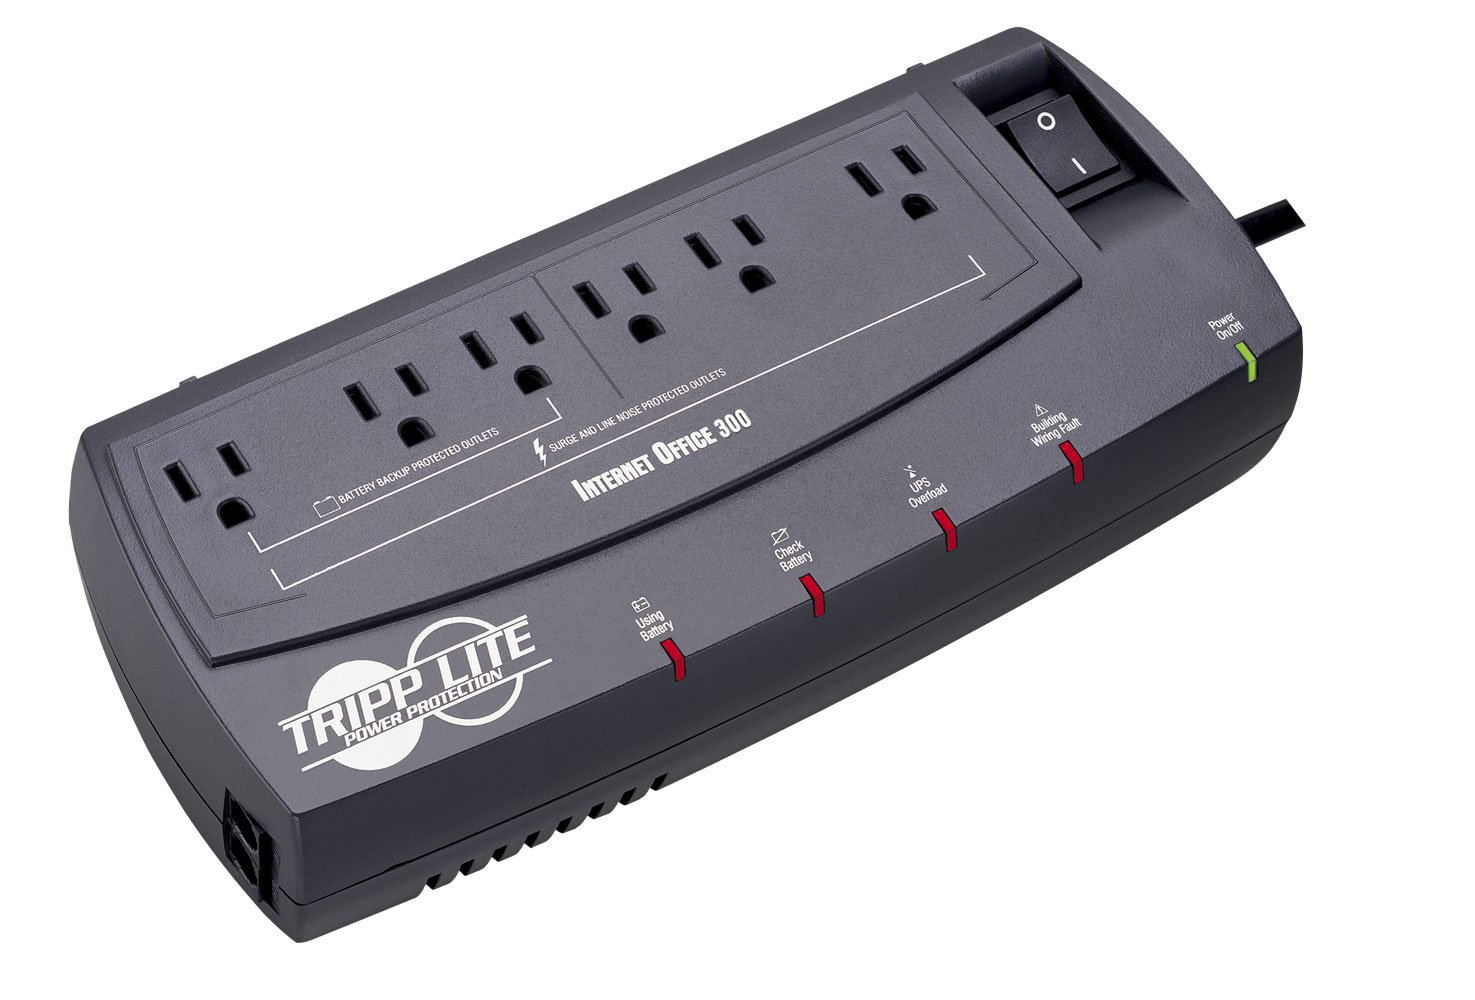 Tripp Lite INTERNETOFFICE300 300VA 150W UPS Desktop Battery Back Up Compact 120V RJ45, 6 Outlets by Tripp Lite